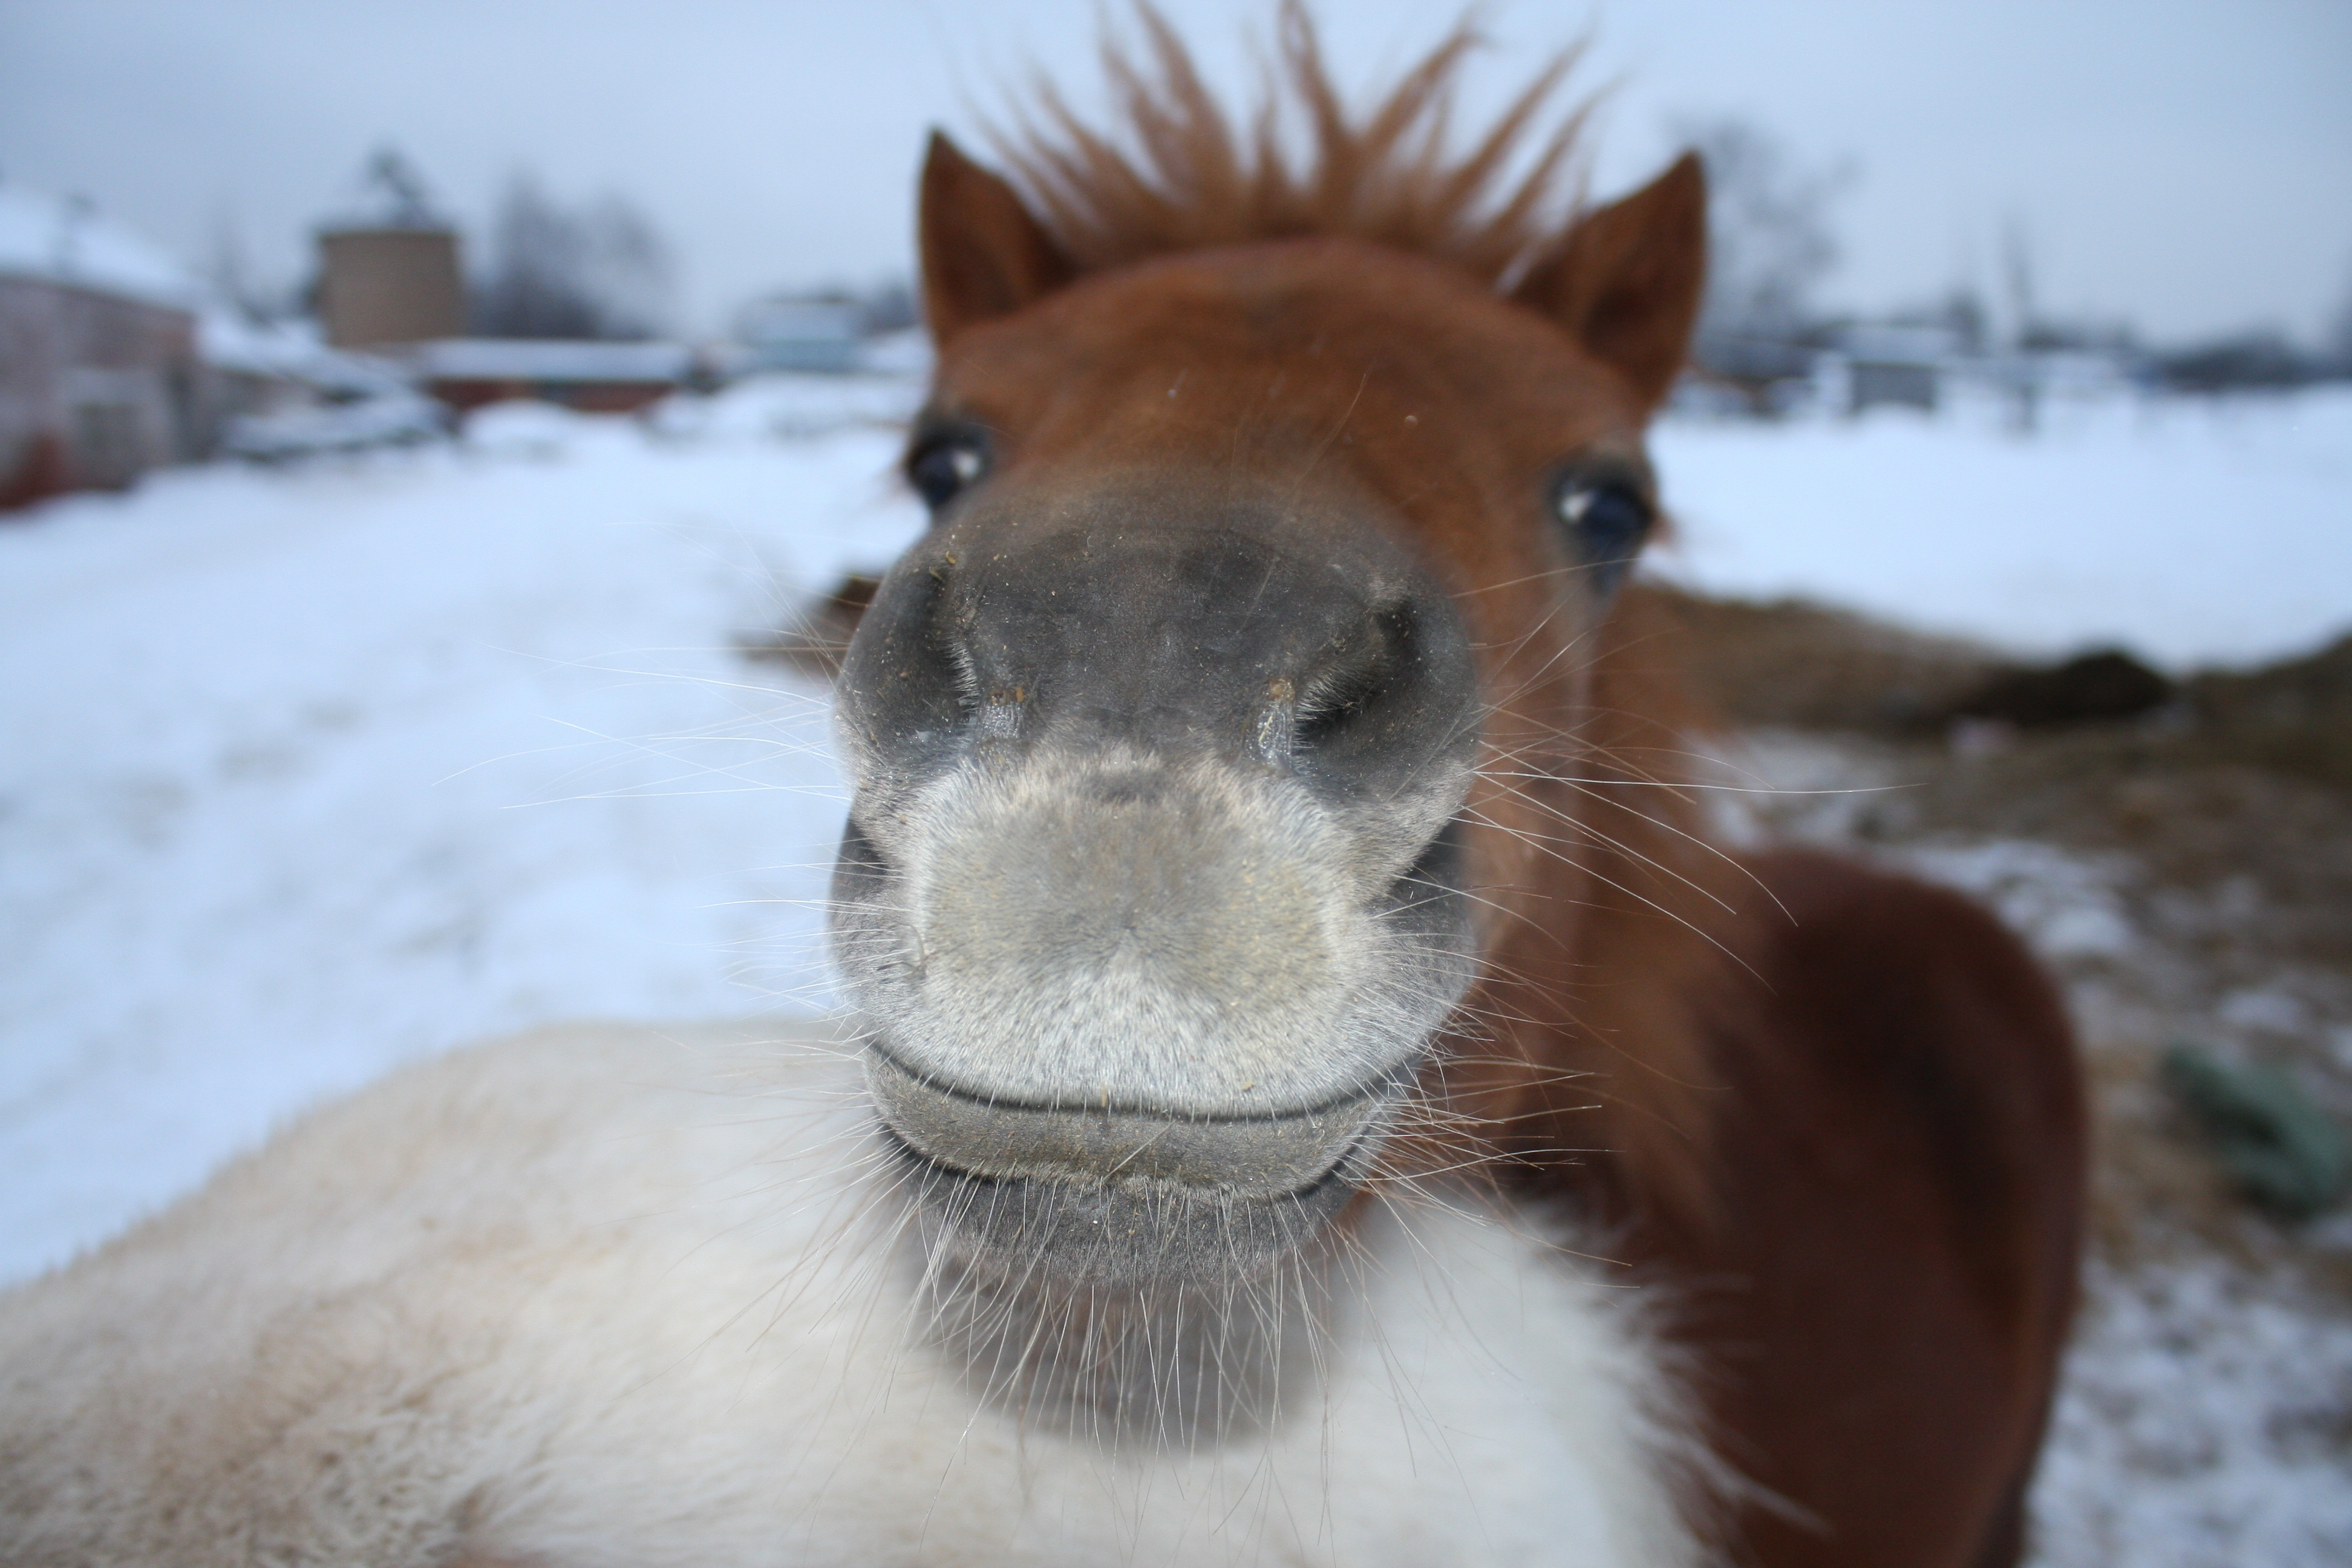 144557 download wallpaper Animals, Horse, Muzzle, Nose screensavers and pictures for free